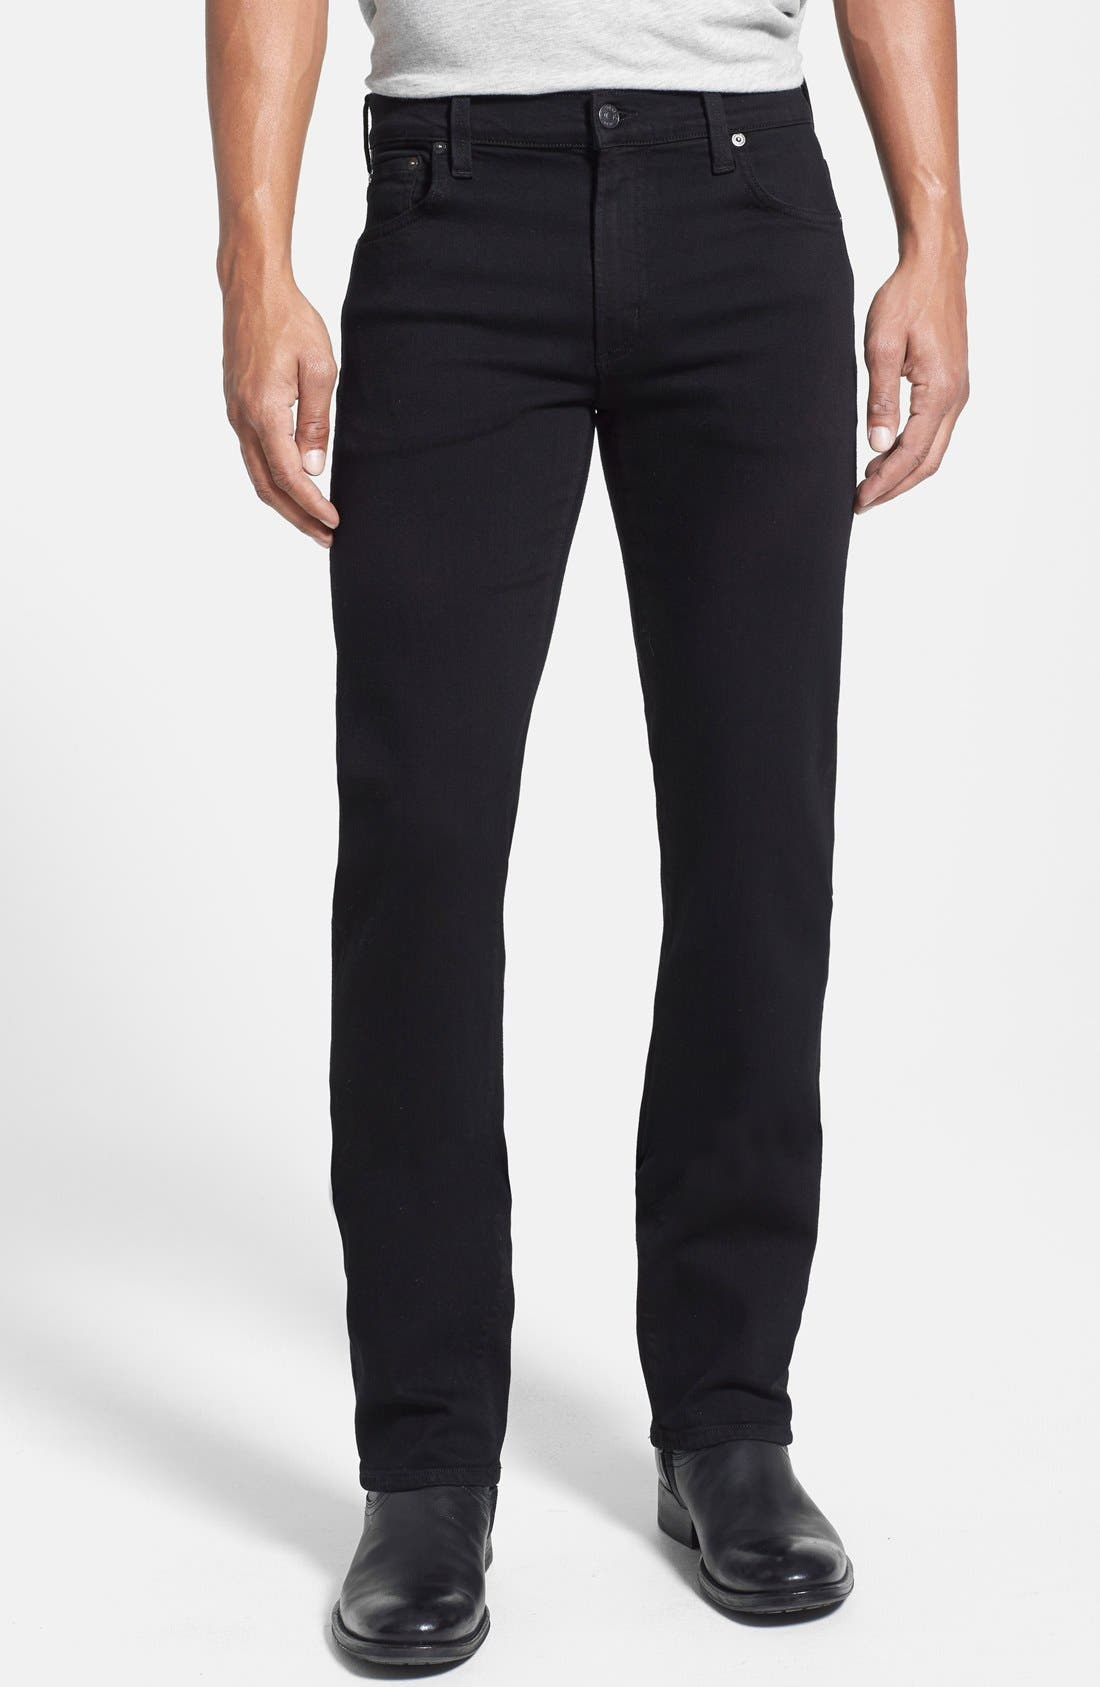 Alternate Image 1 Selected - Citizens of Humanity 'Mod Comfort' Slim Fit Jeans (Dog Town)